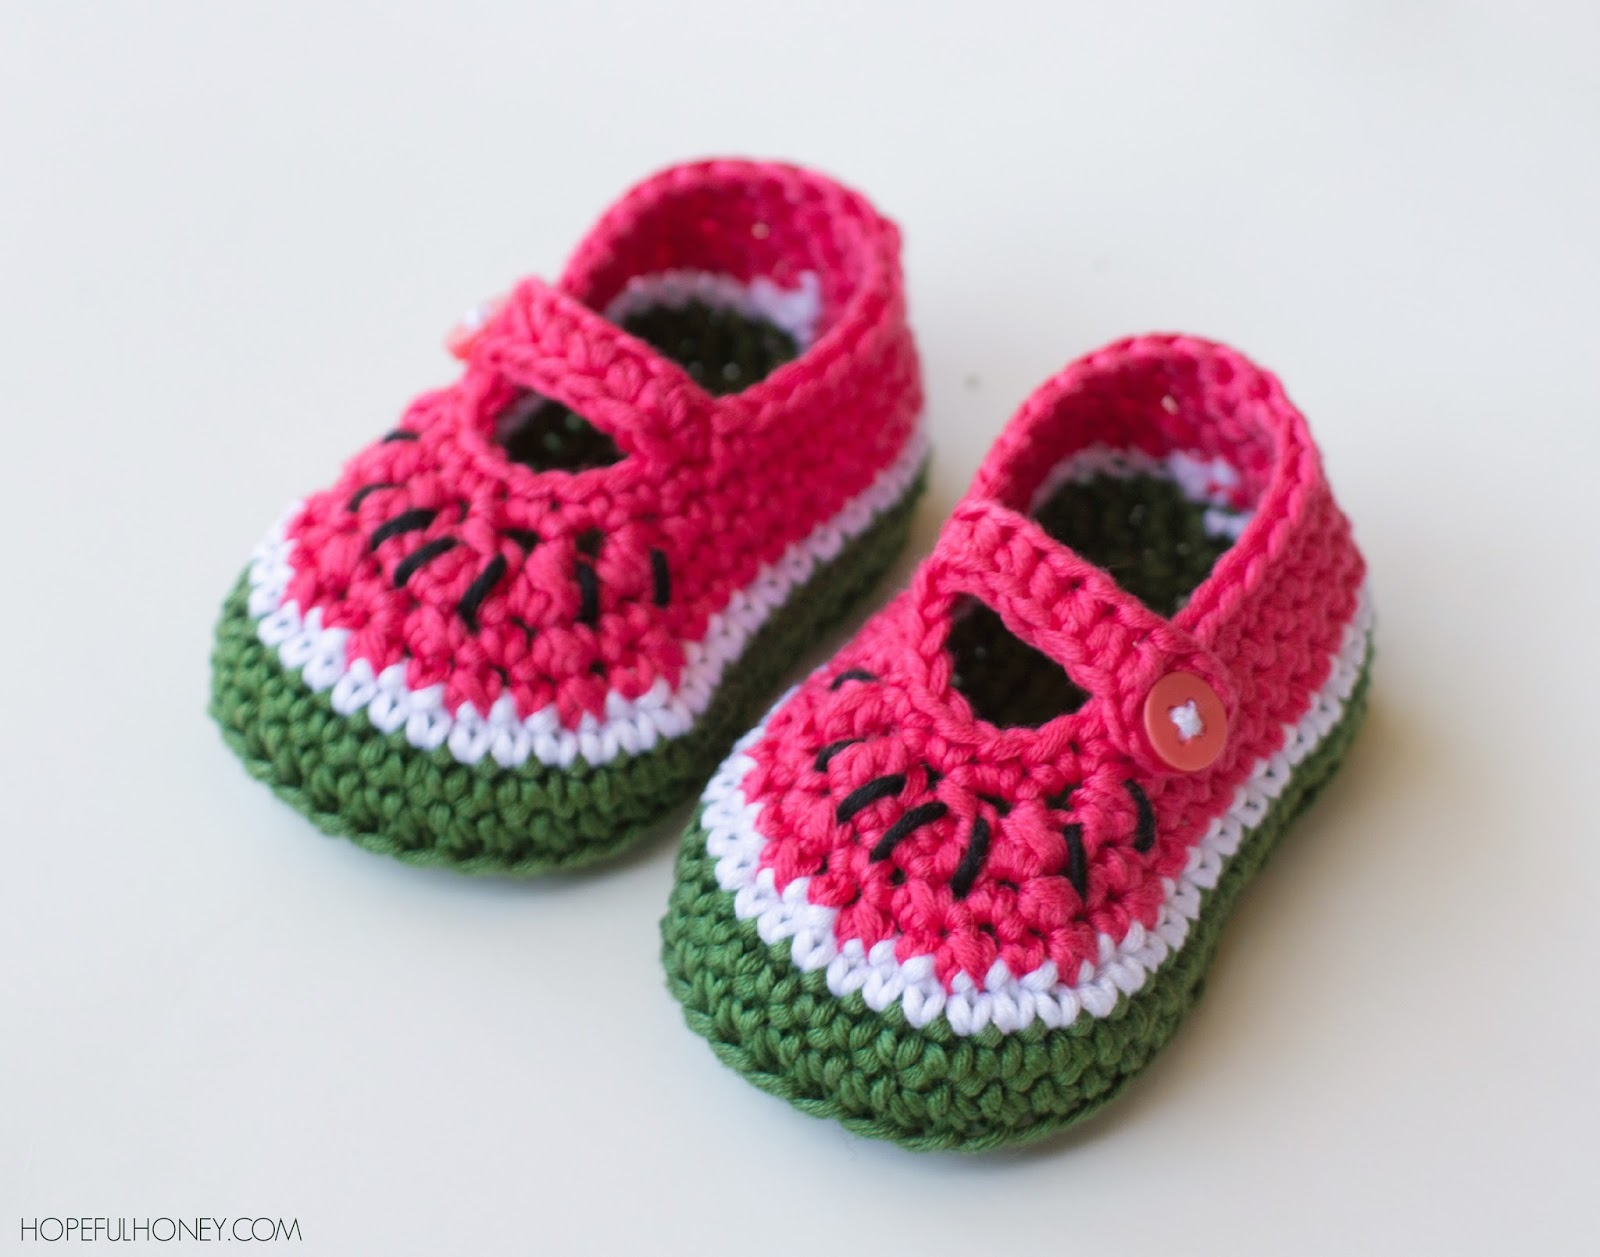 Craft Crochet Create Watermelon Baby Booties Crochet Pattern